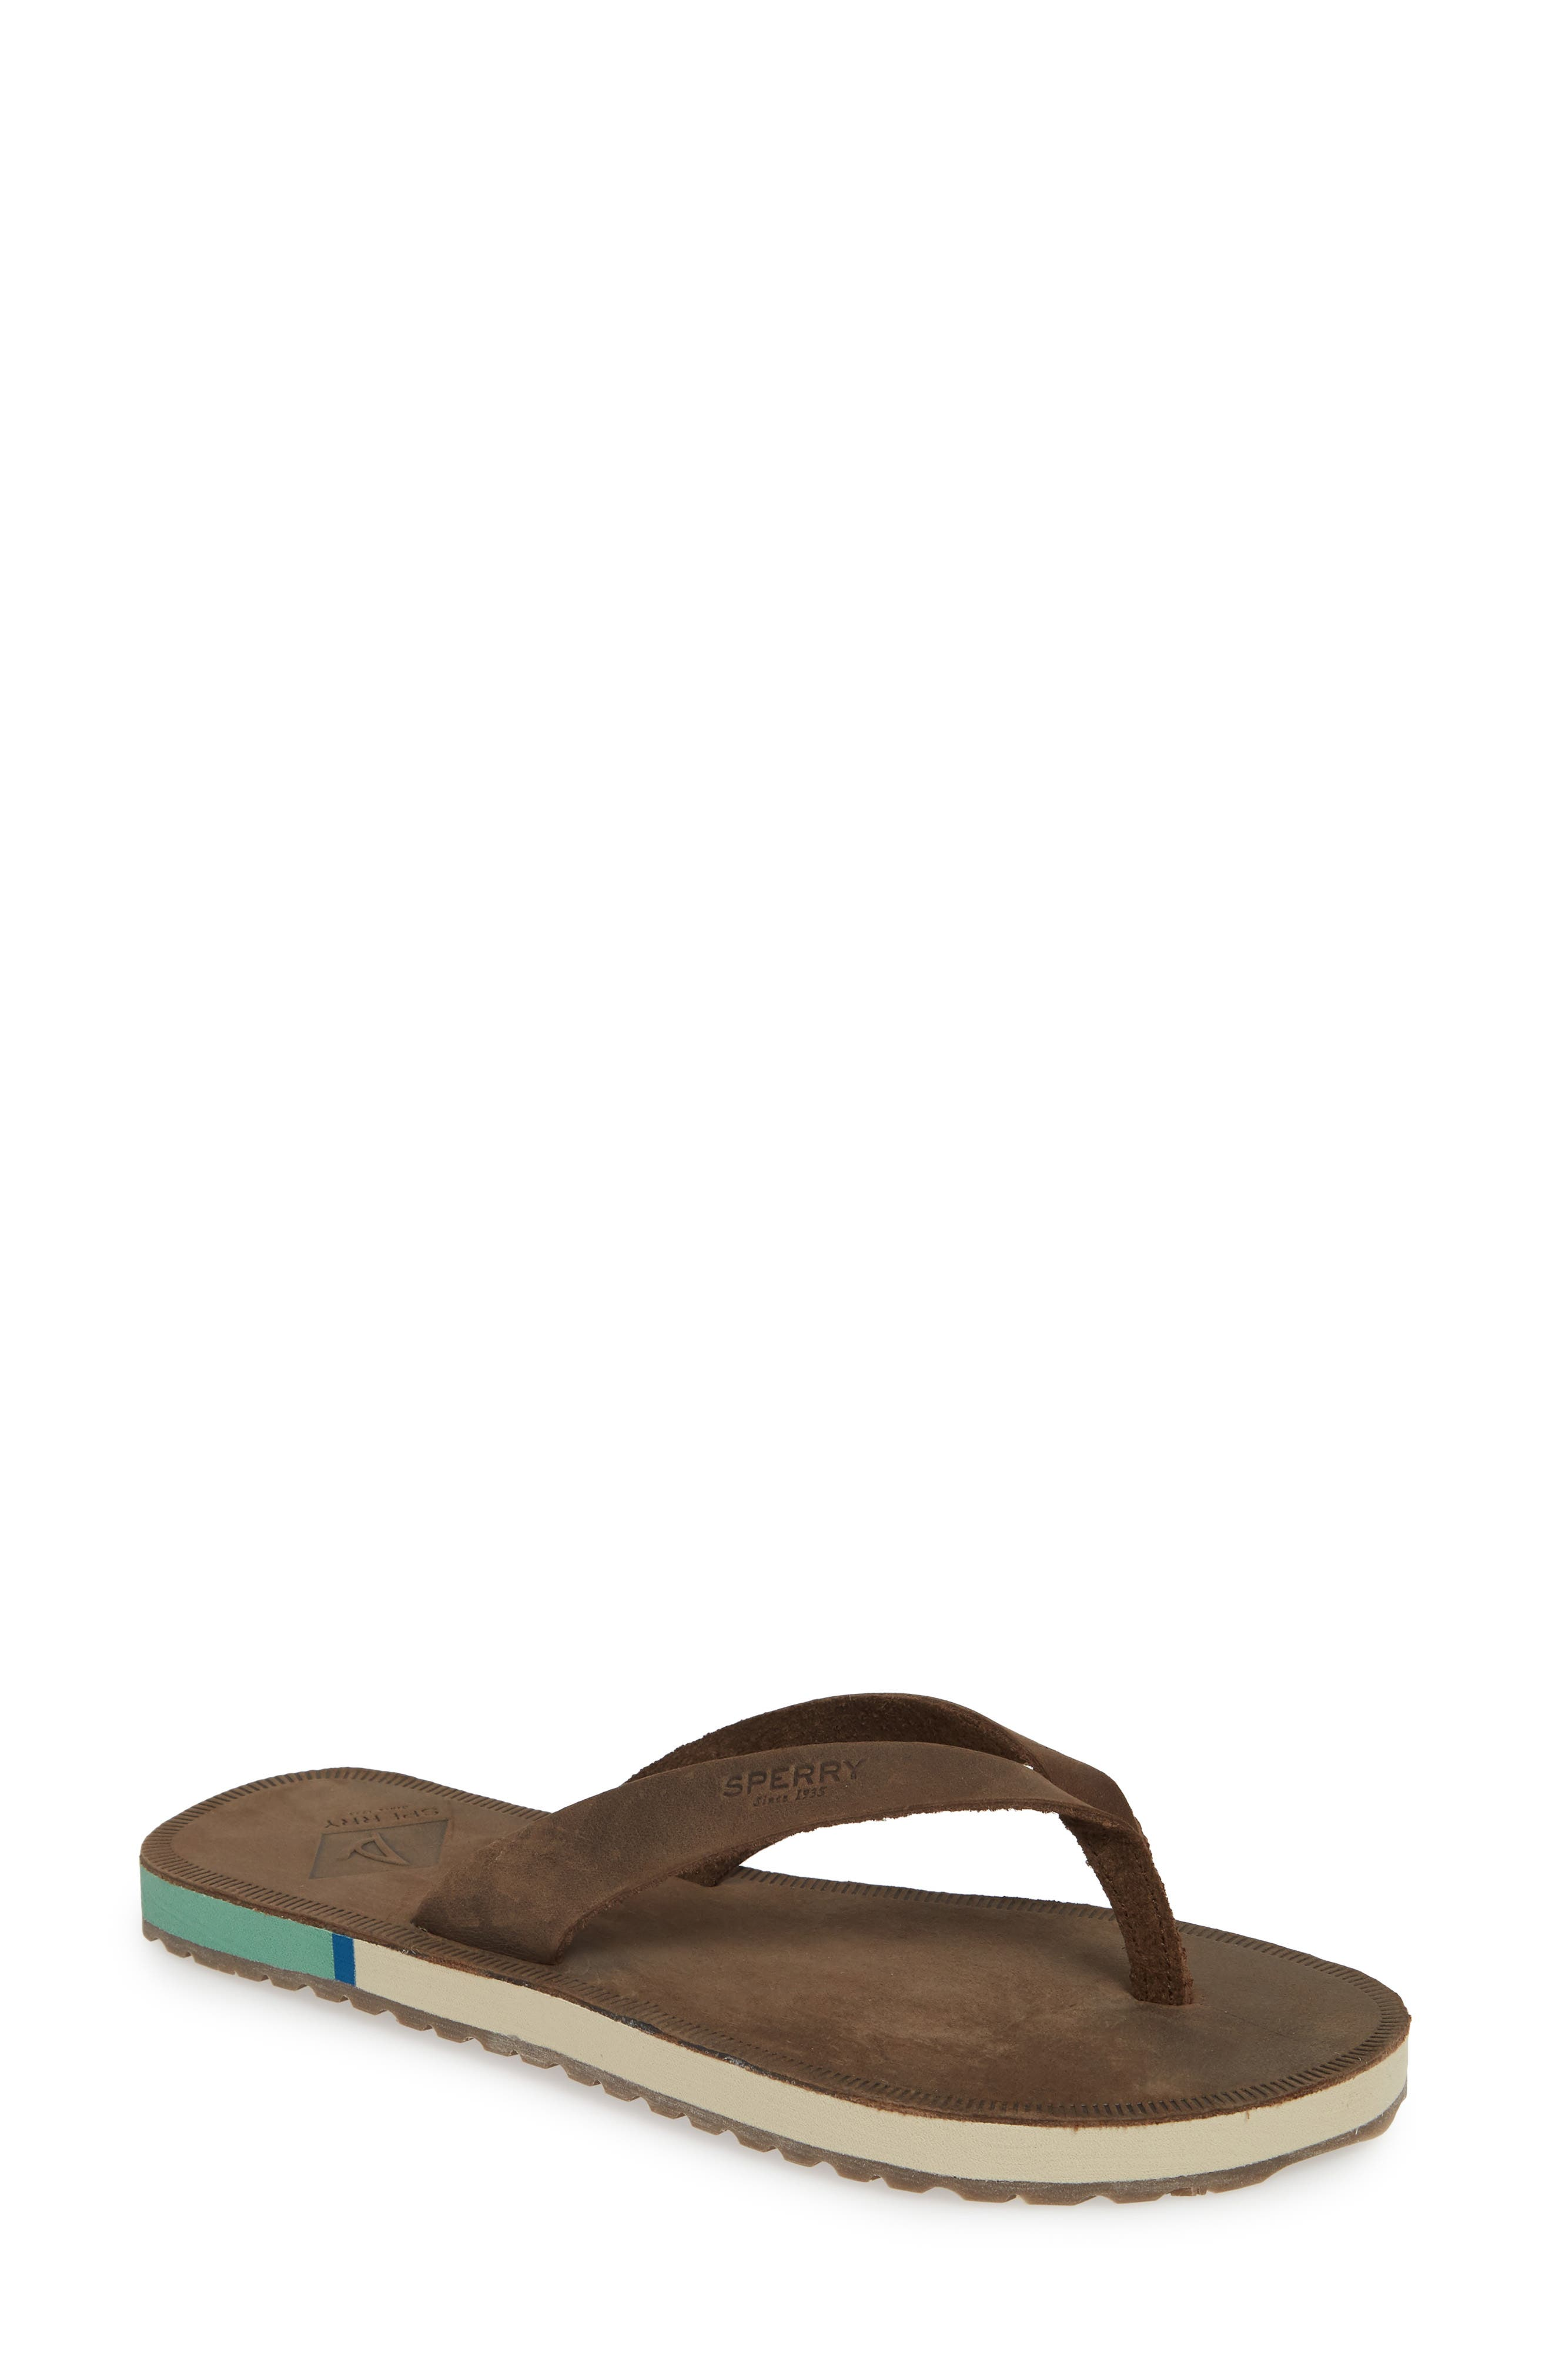 SPERRY Wharf Flip Flop, Main, color, CHOCOLATE LEATHER